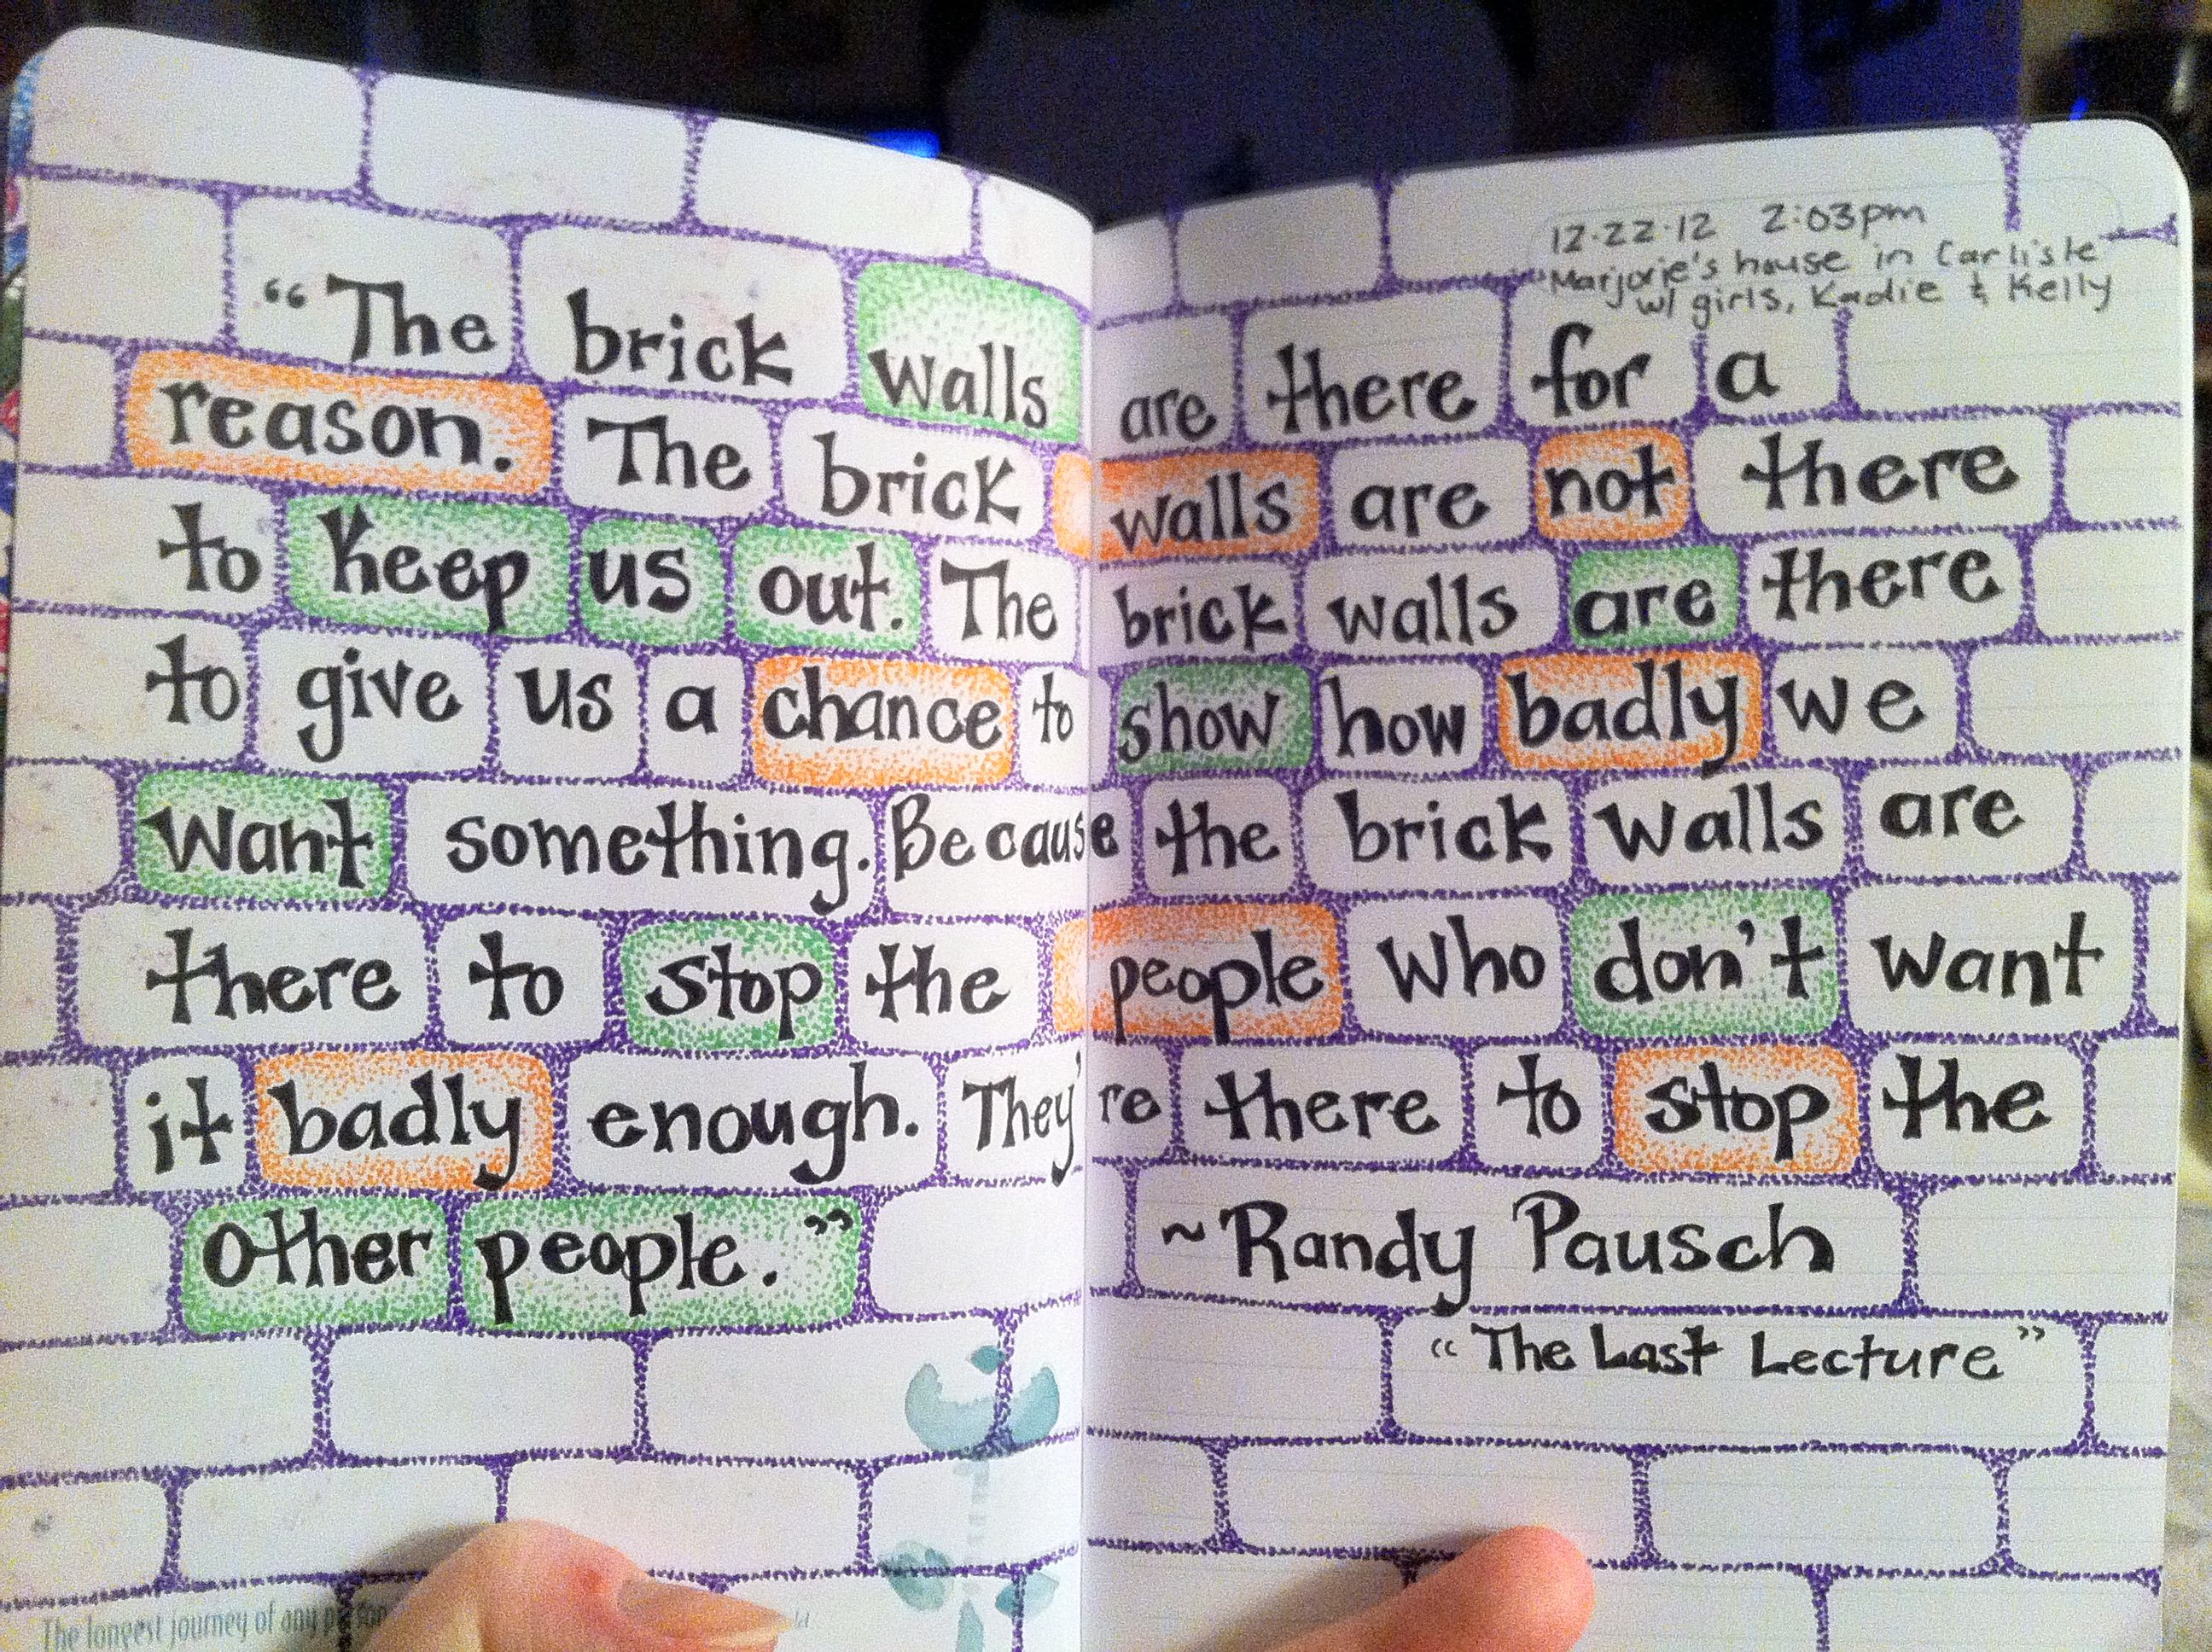 Randy Pausch Quotes About Life. QuotesGram